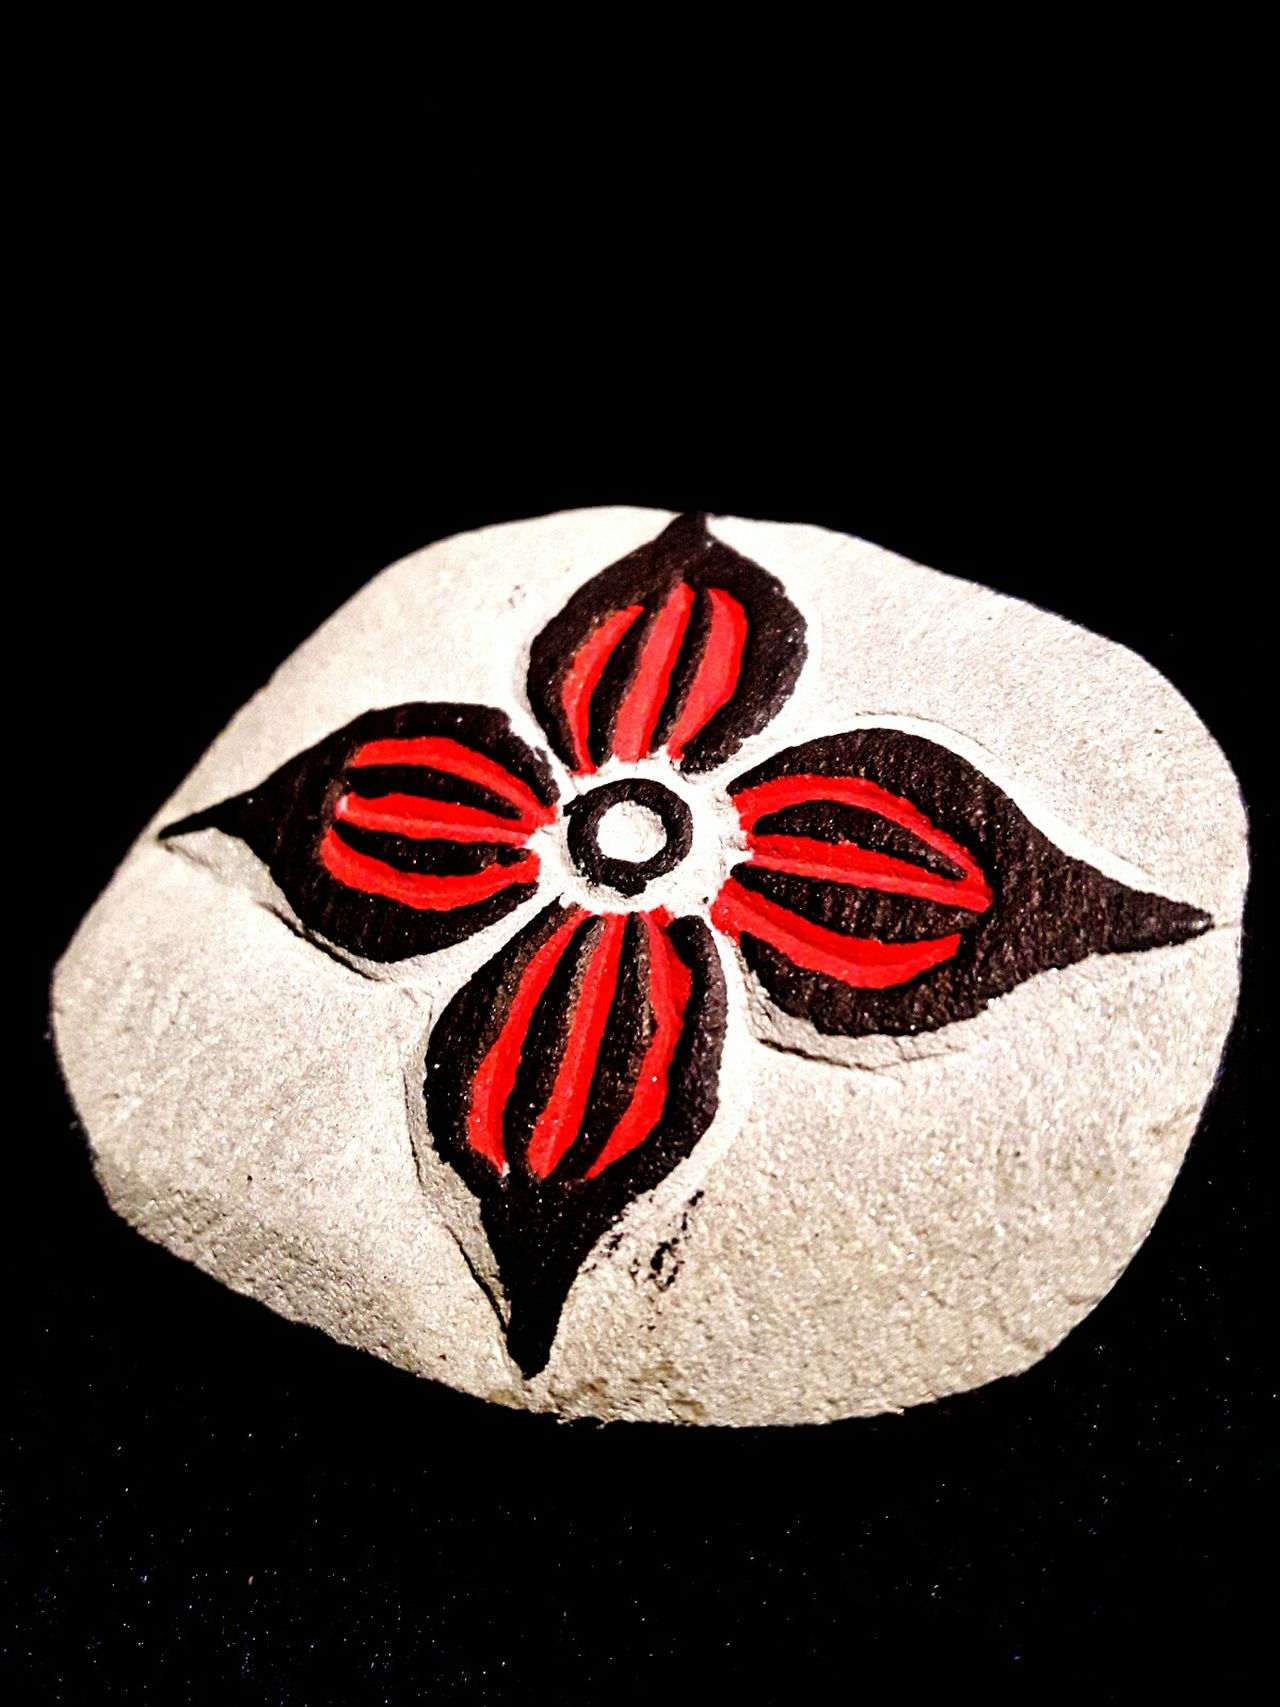 Black Background No People Close-up EyeEm Best Shots My Art, My Soul... EyeEm Best Edits Taking Photos Being Creative Popular Photos My Unique Style Stone Art Indian Culture  Painted Flower